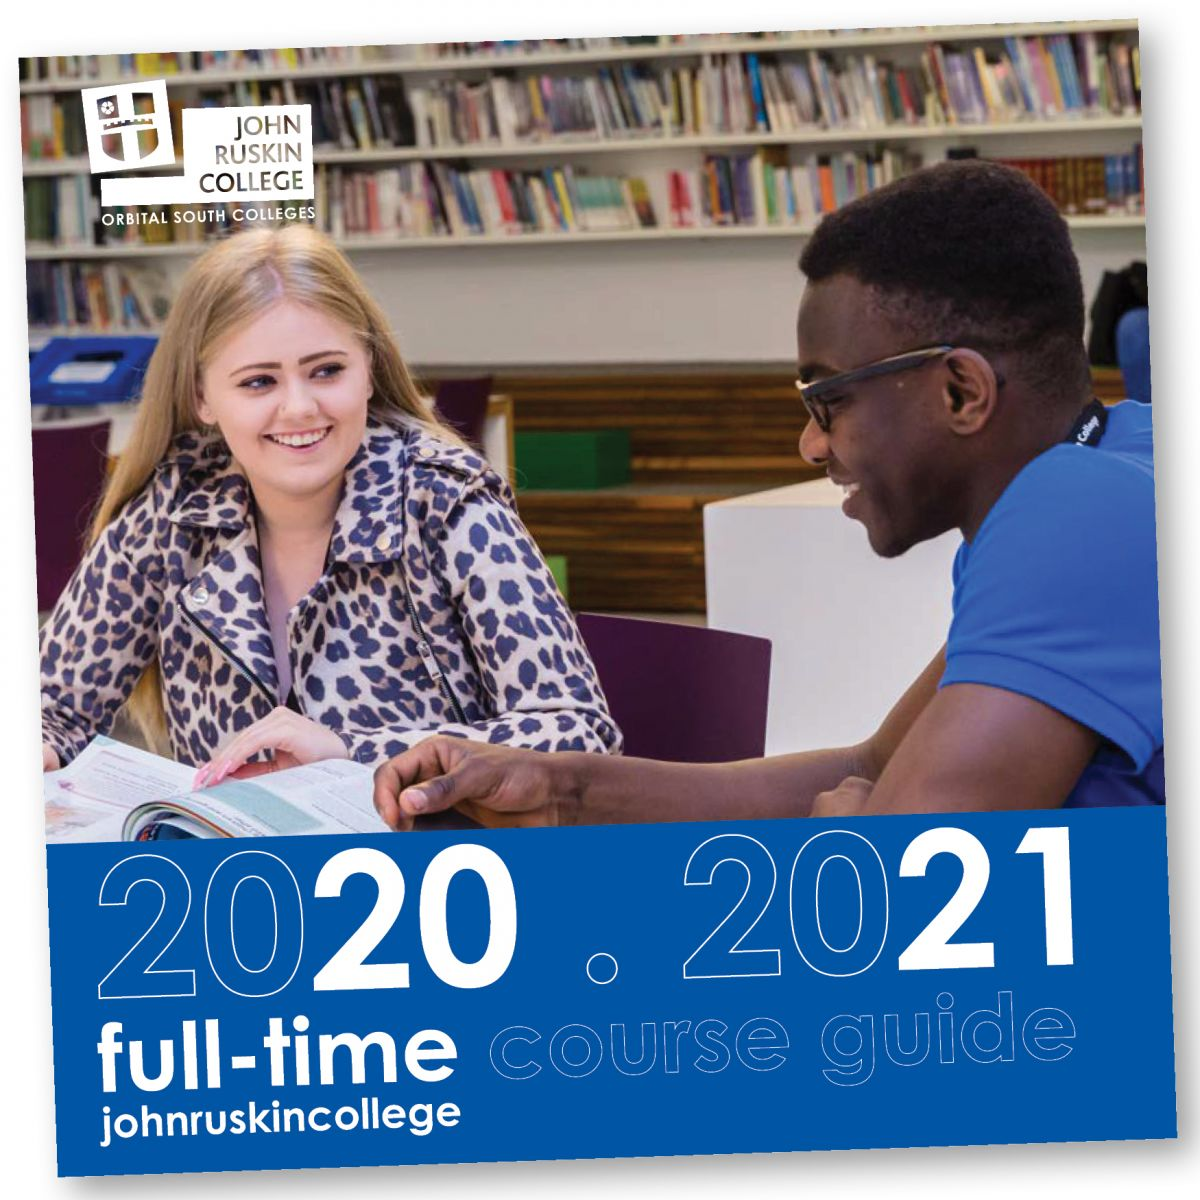 John Ruskin College Full-time course guide 2020-21